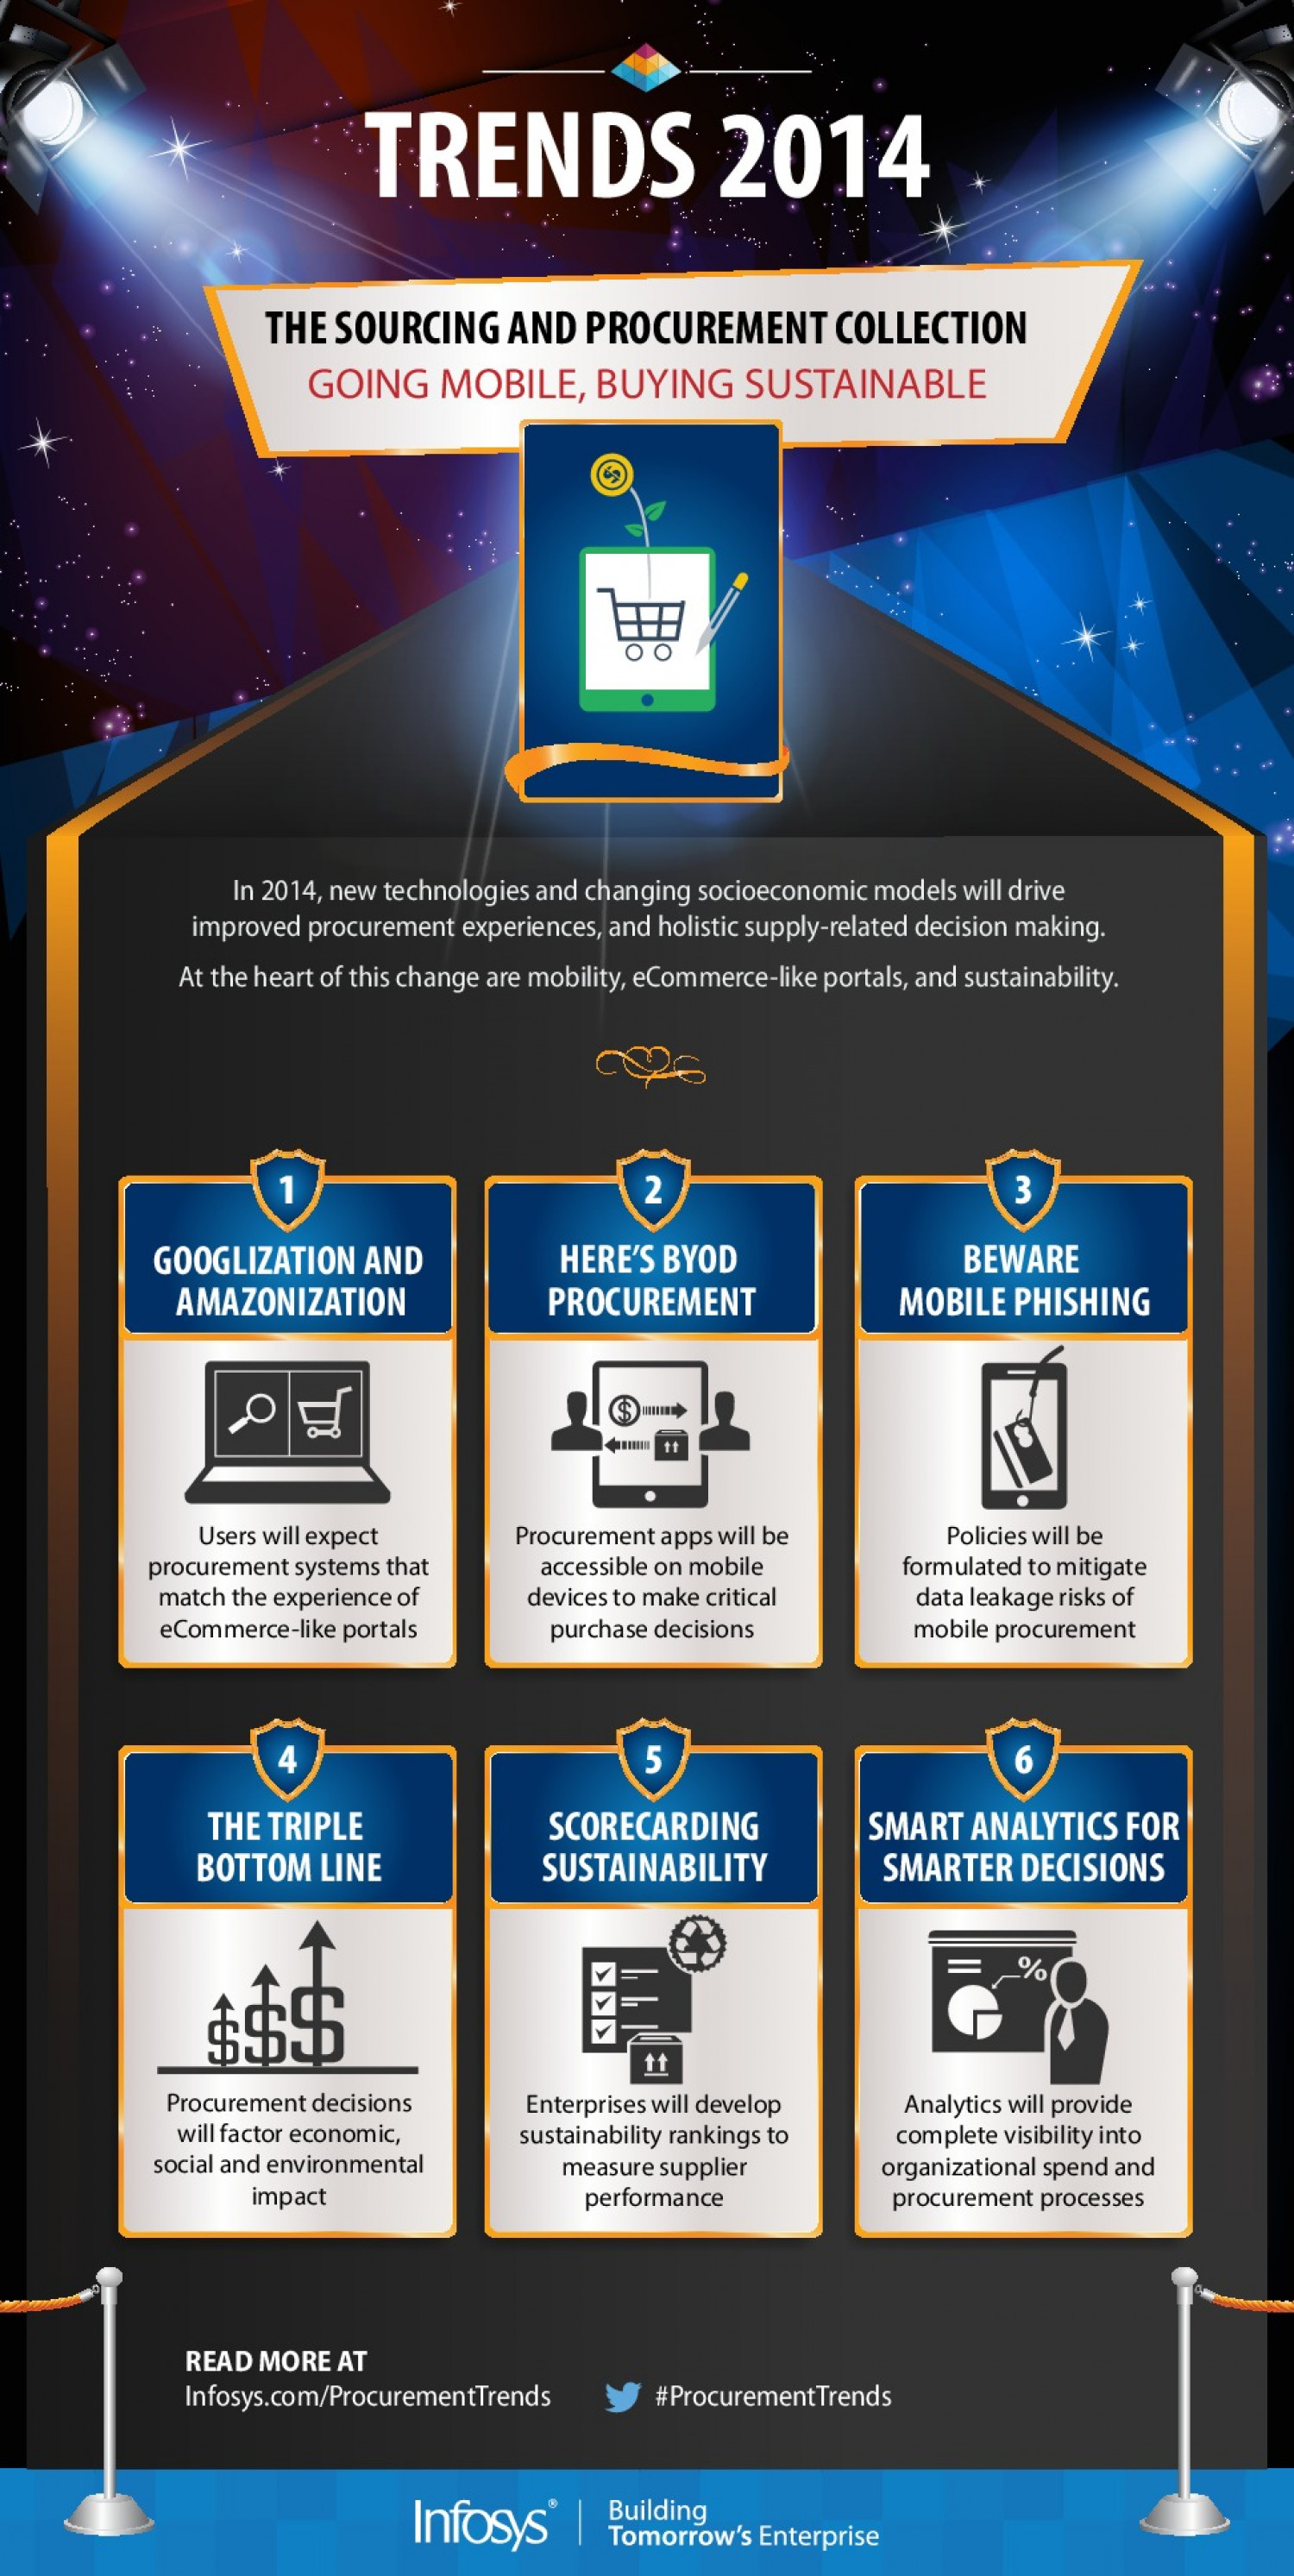 6 Sourcing & Procurement Trends For 2014 Infographic